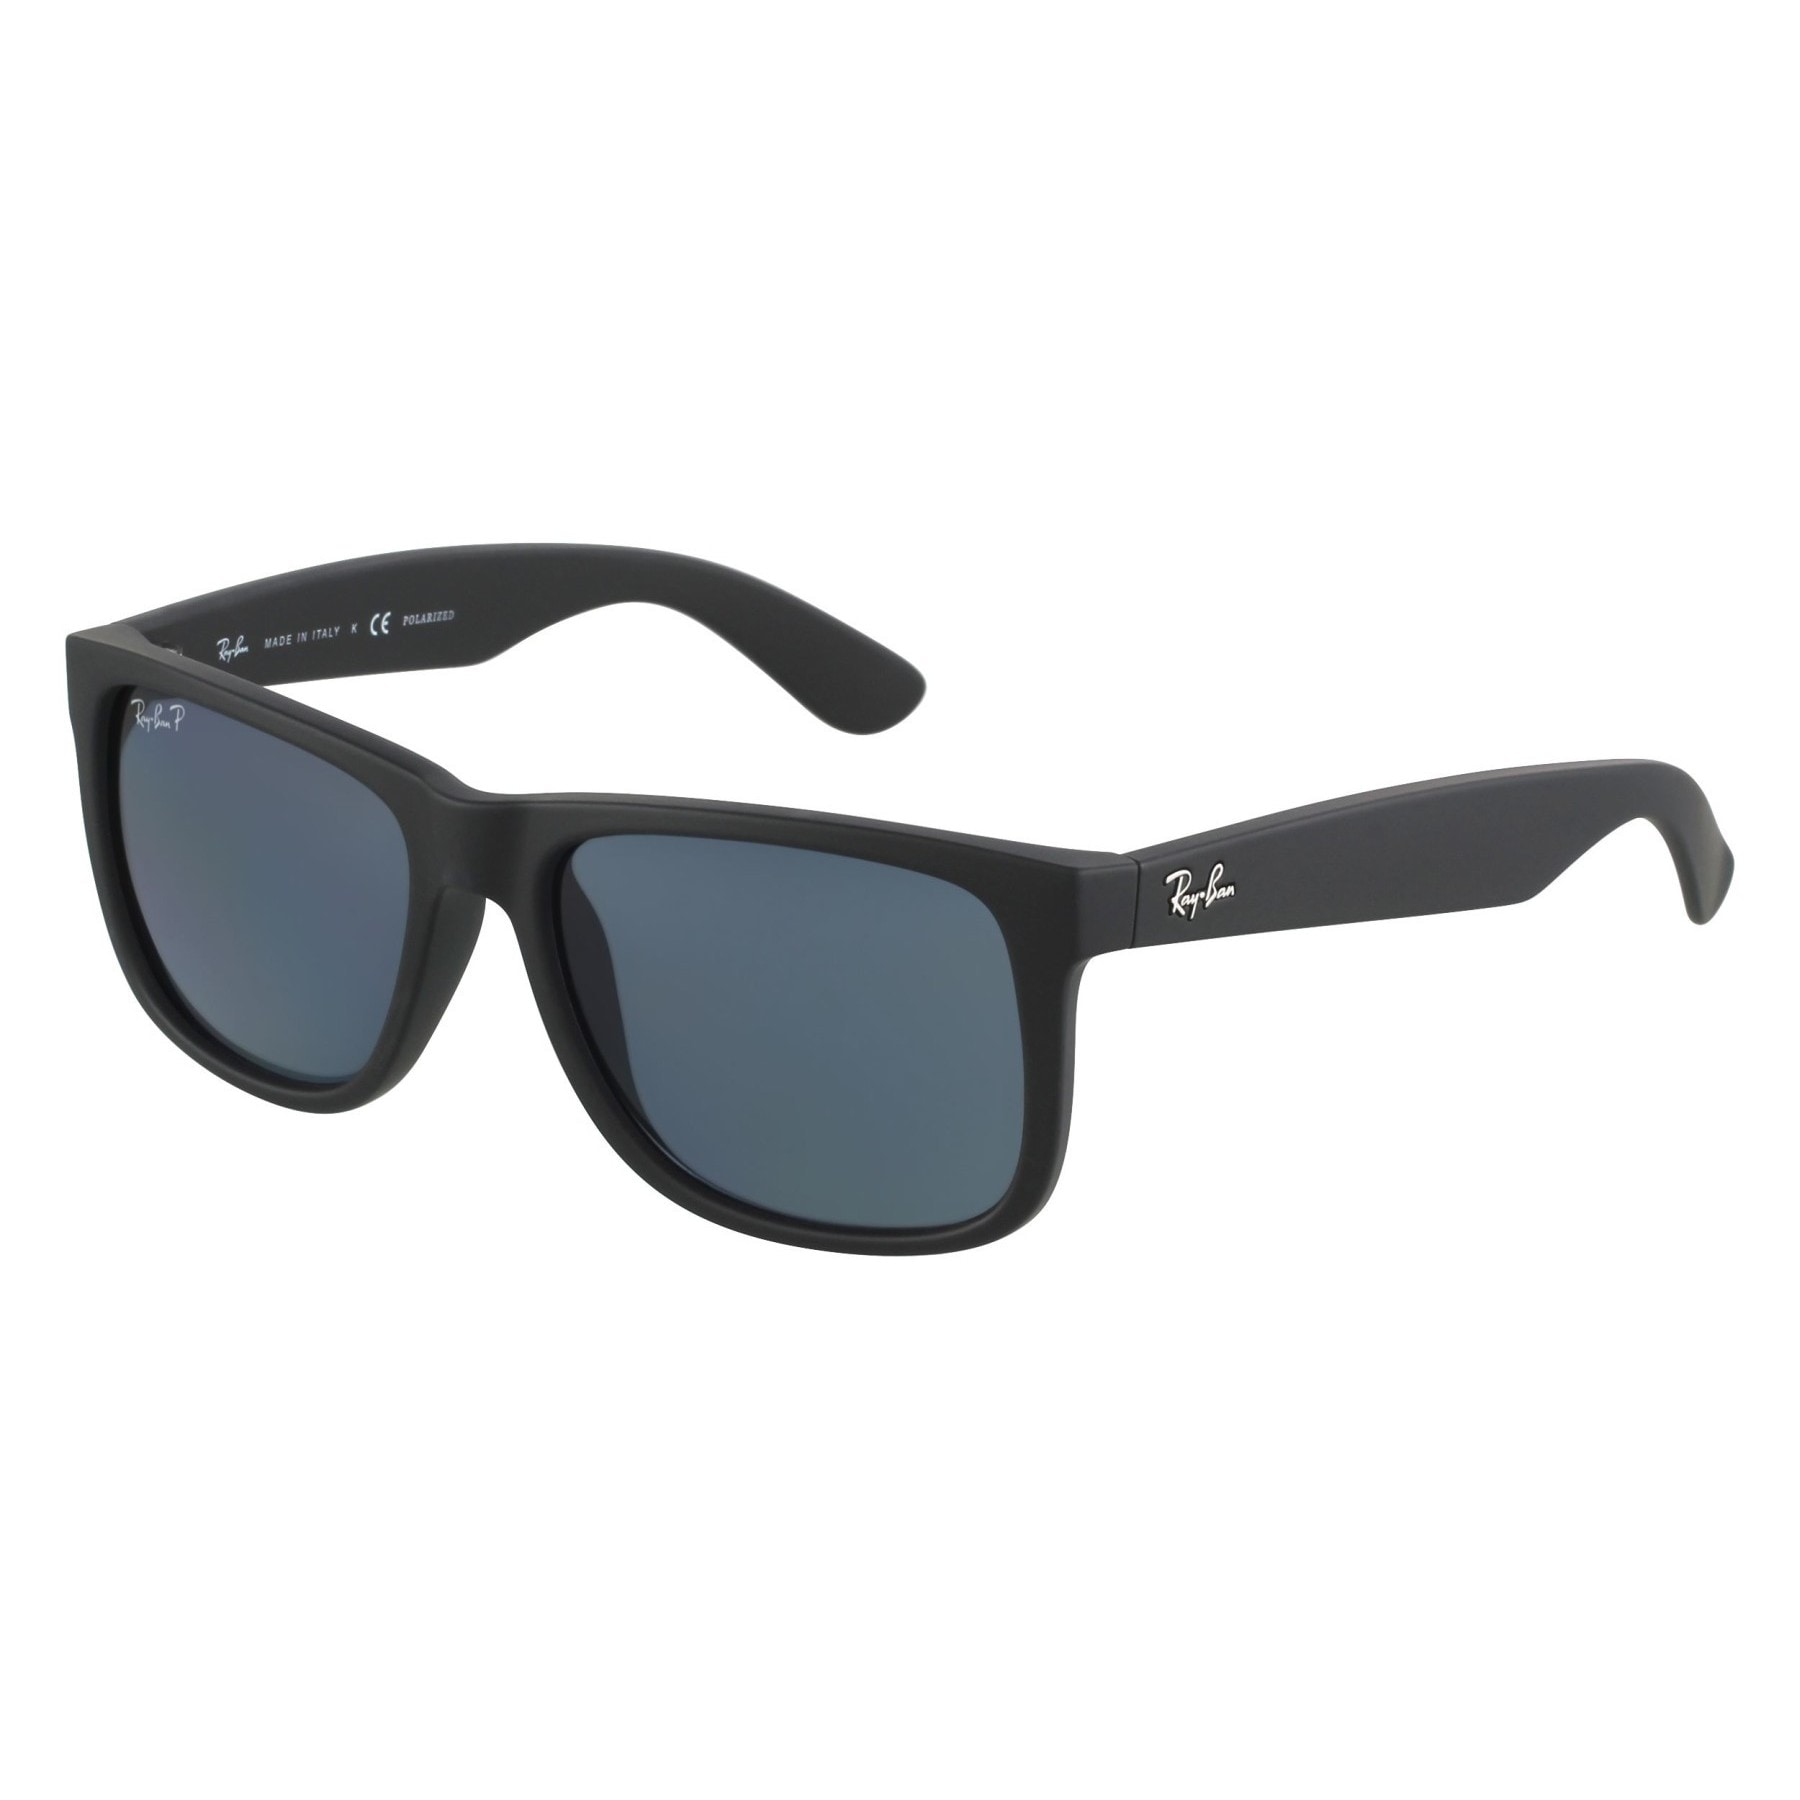 b2c62a0deb9a0 Buy Black Fashion Sunglasses Online at Overstock